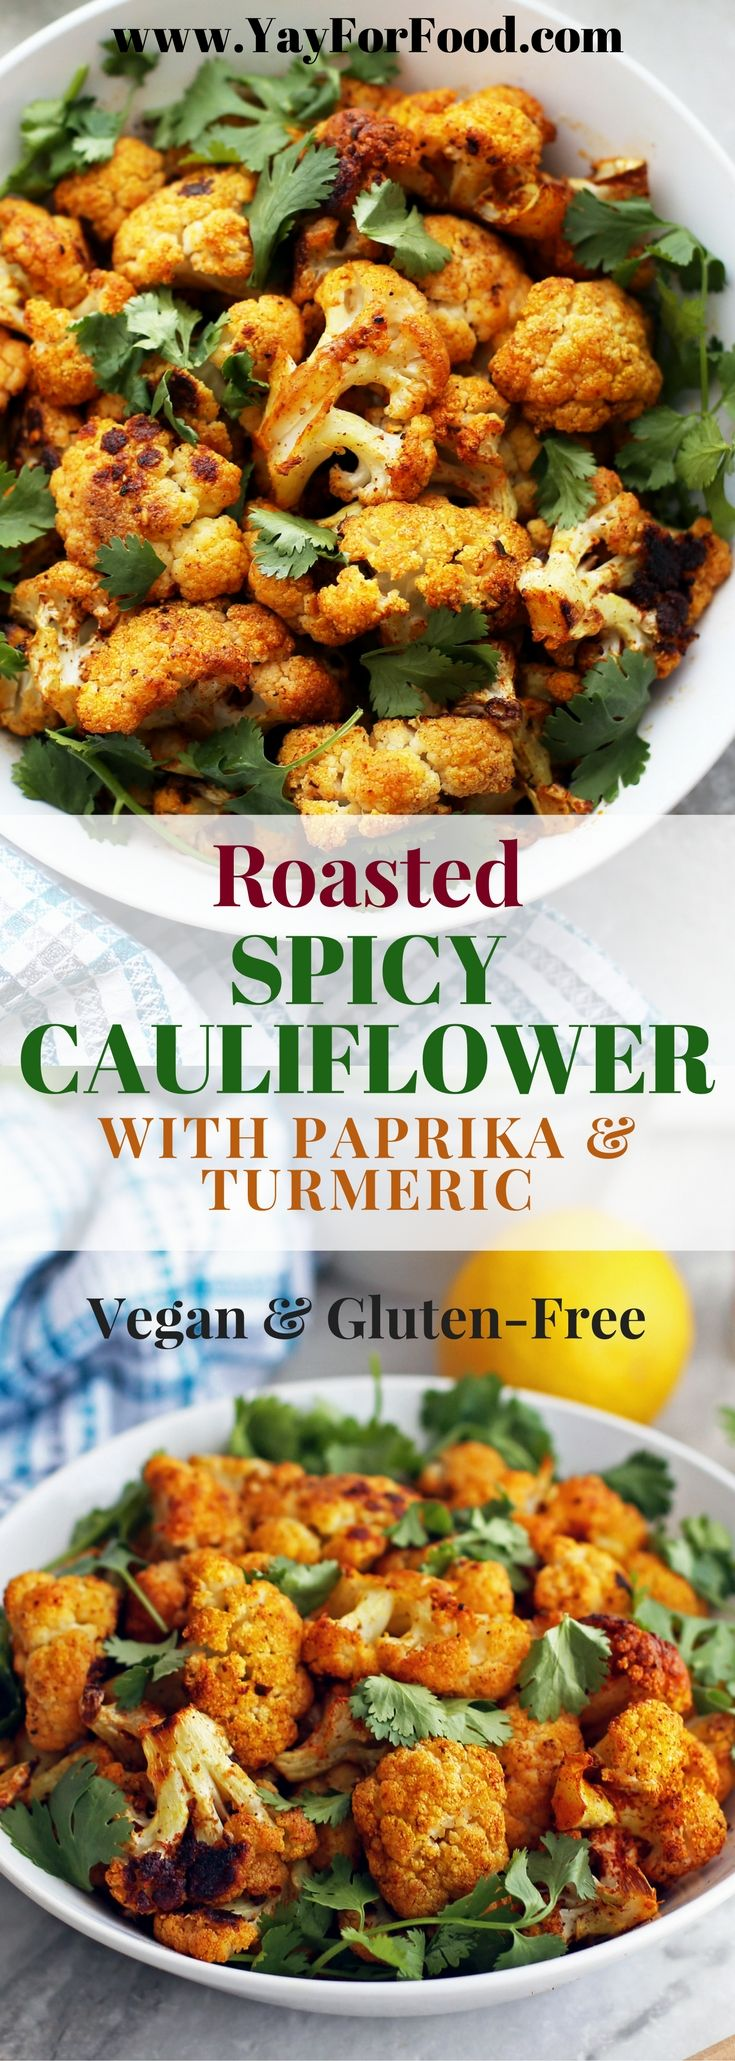 This tasty roasted spiced cauliflower side dish is easy, flavourful, and healthy. It's naturally #vegan and #gluten-free too. #SideDishes | #Vegetarian | #Spicy | #Vegetables | #EasyRecipes | #HealthyRecipes | #cauliflower